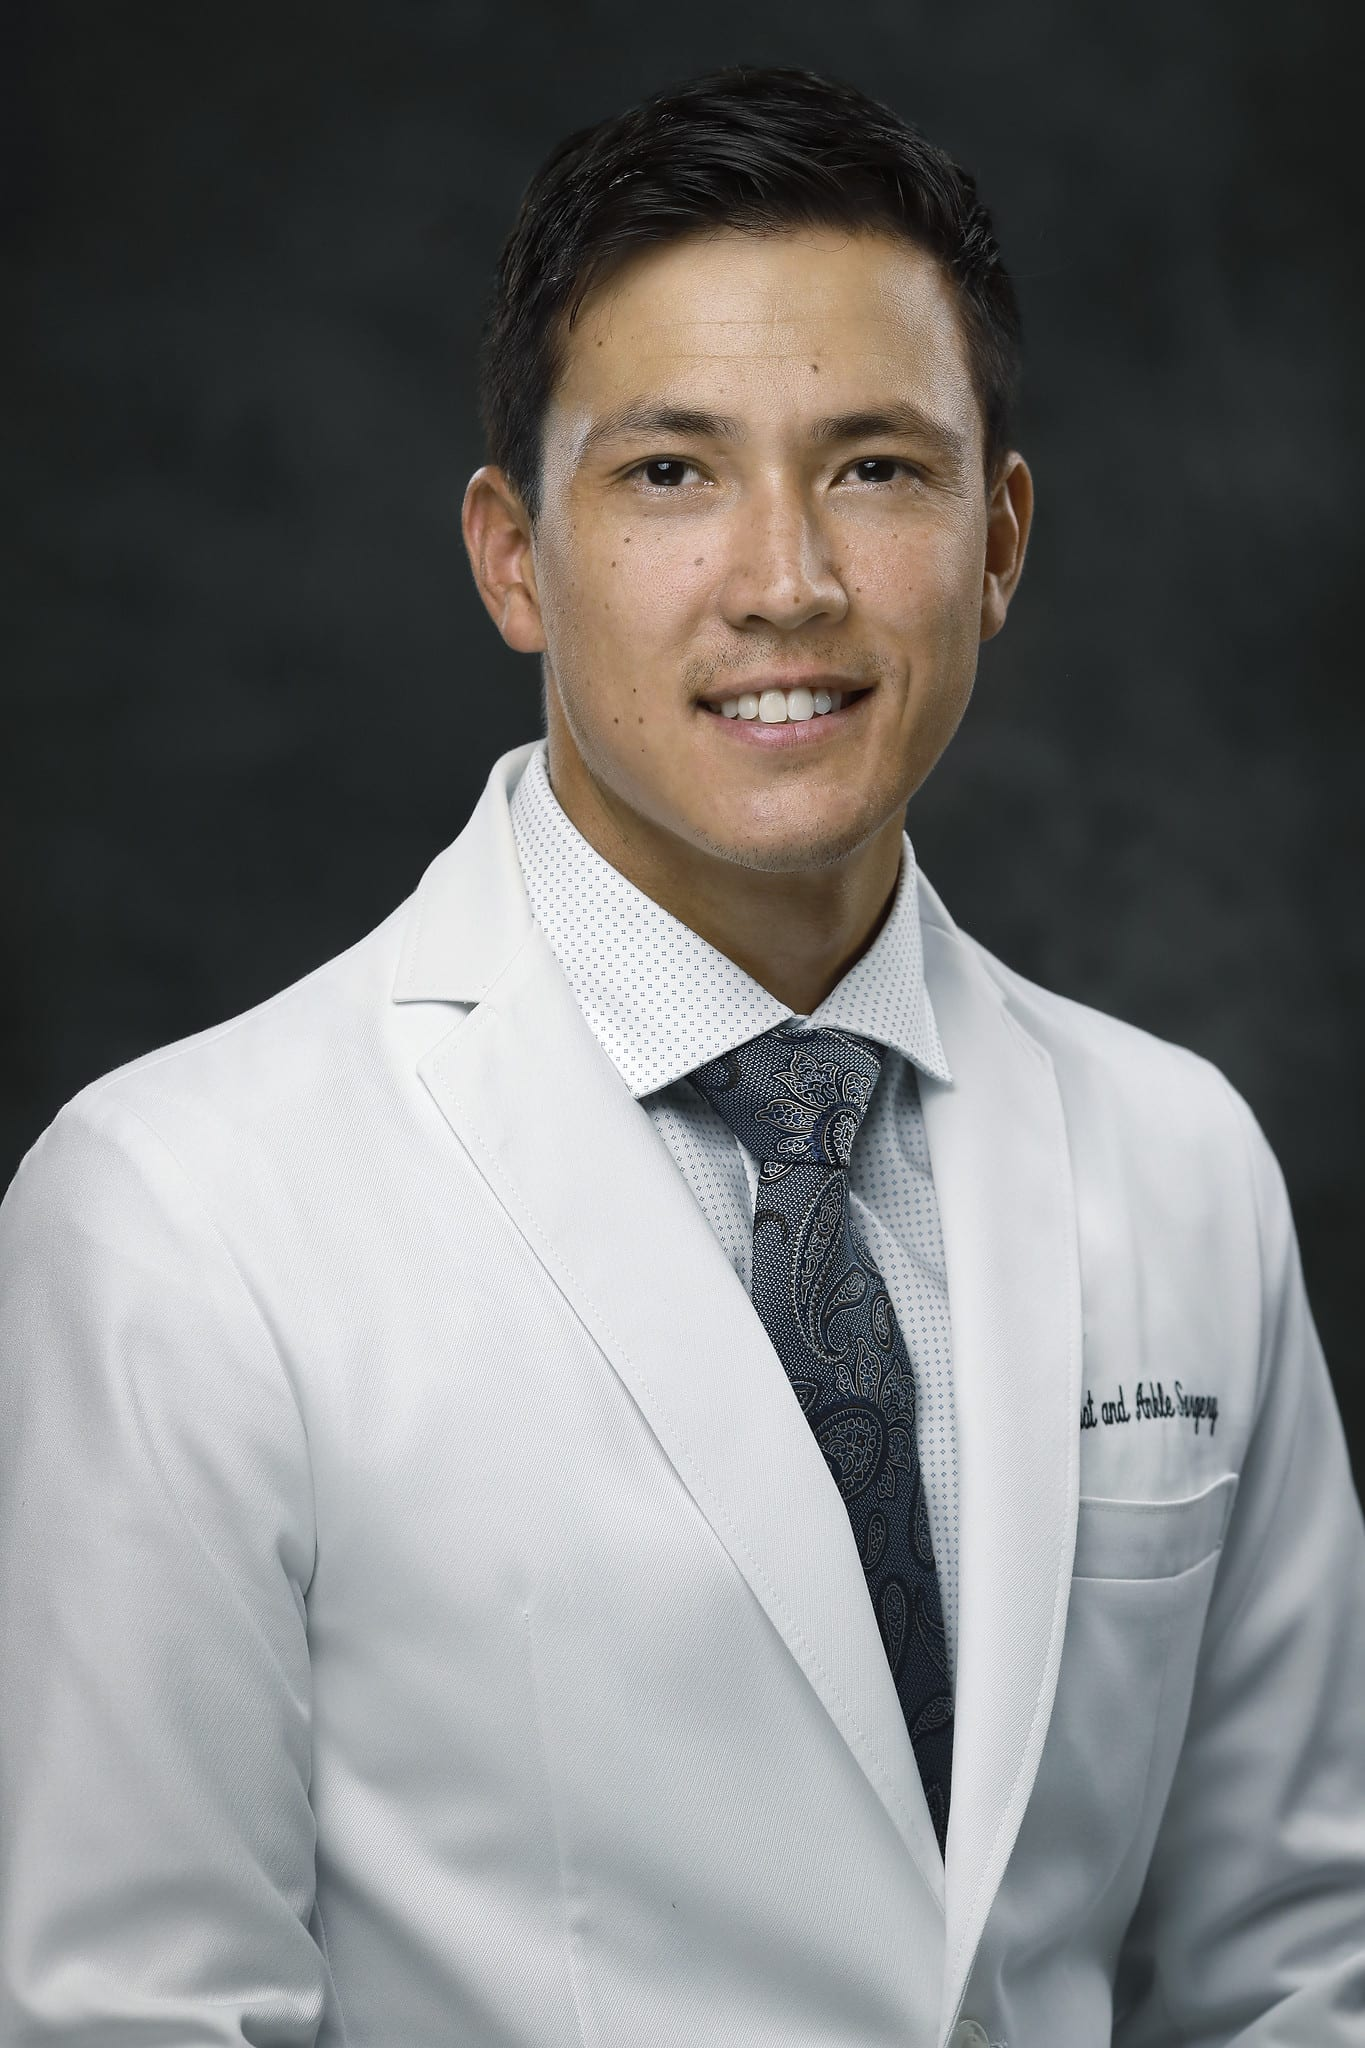 dr-dillard-white-coat